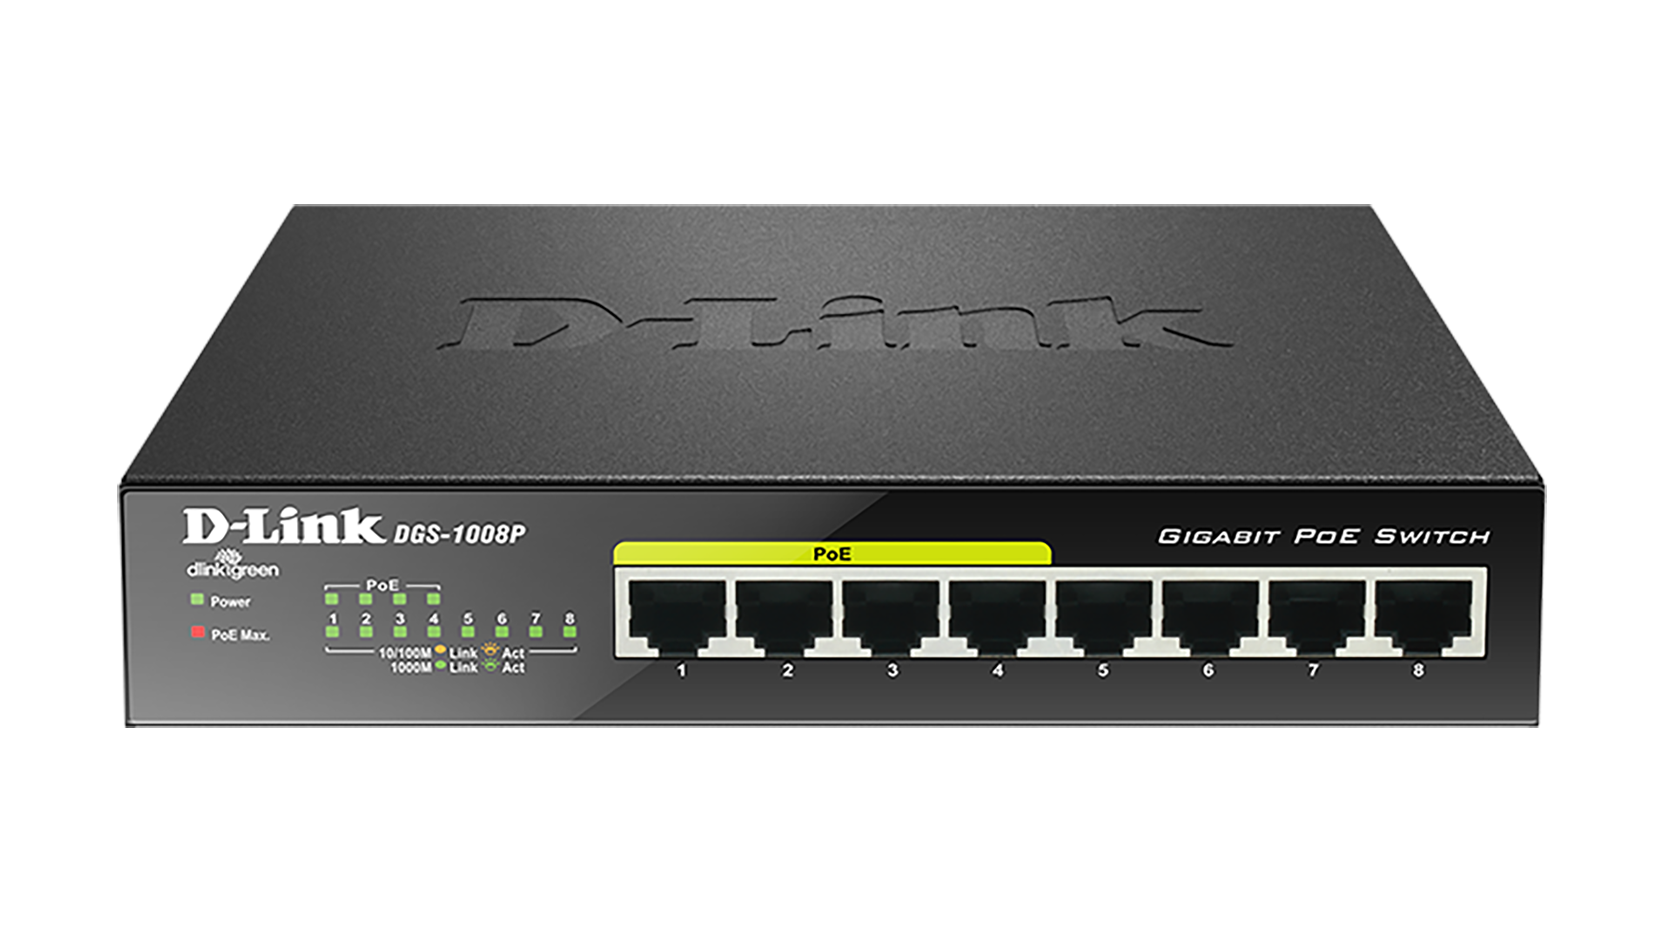 D-Link DGS-1008P 8x 1000 Desktop Switch,4PoE port